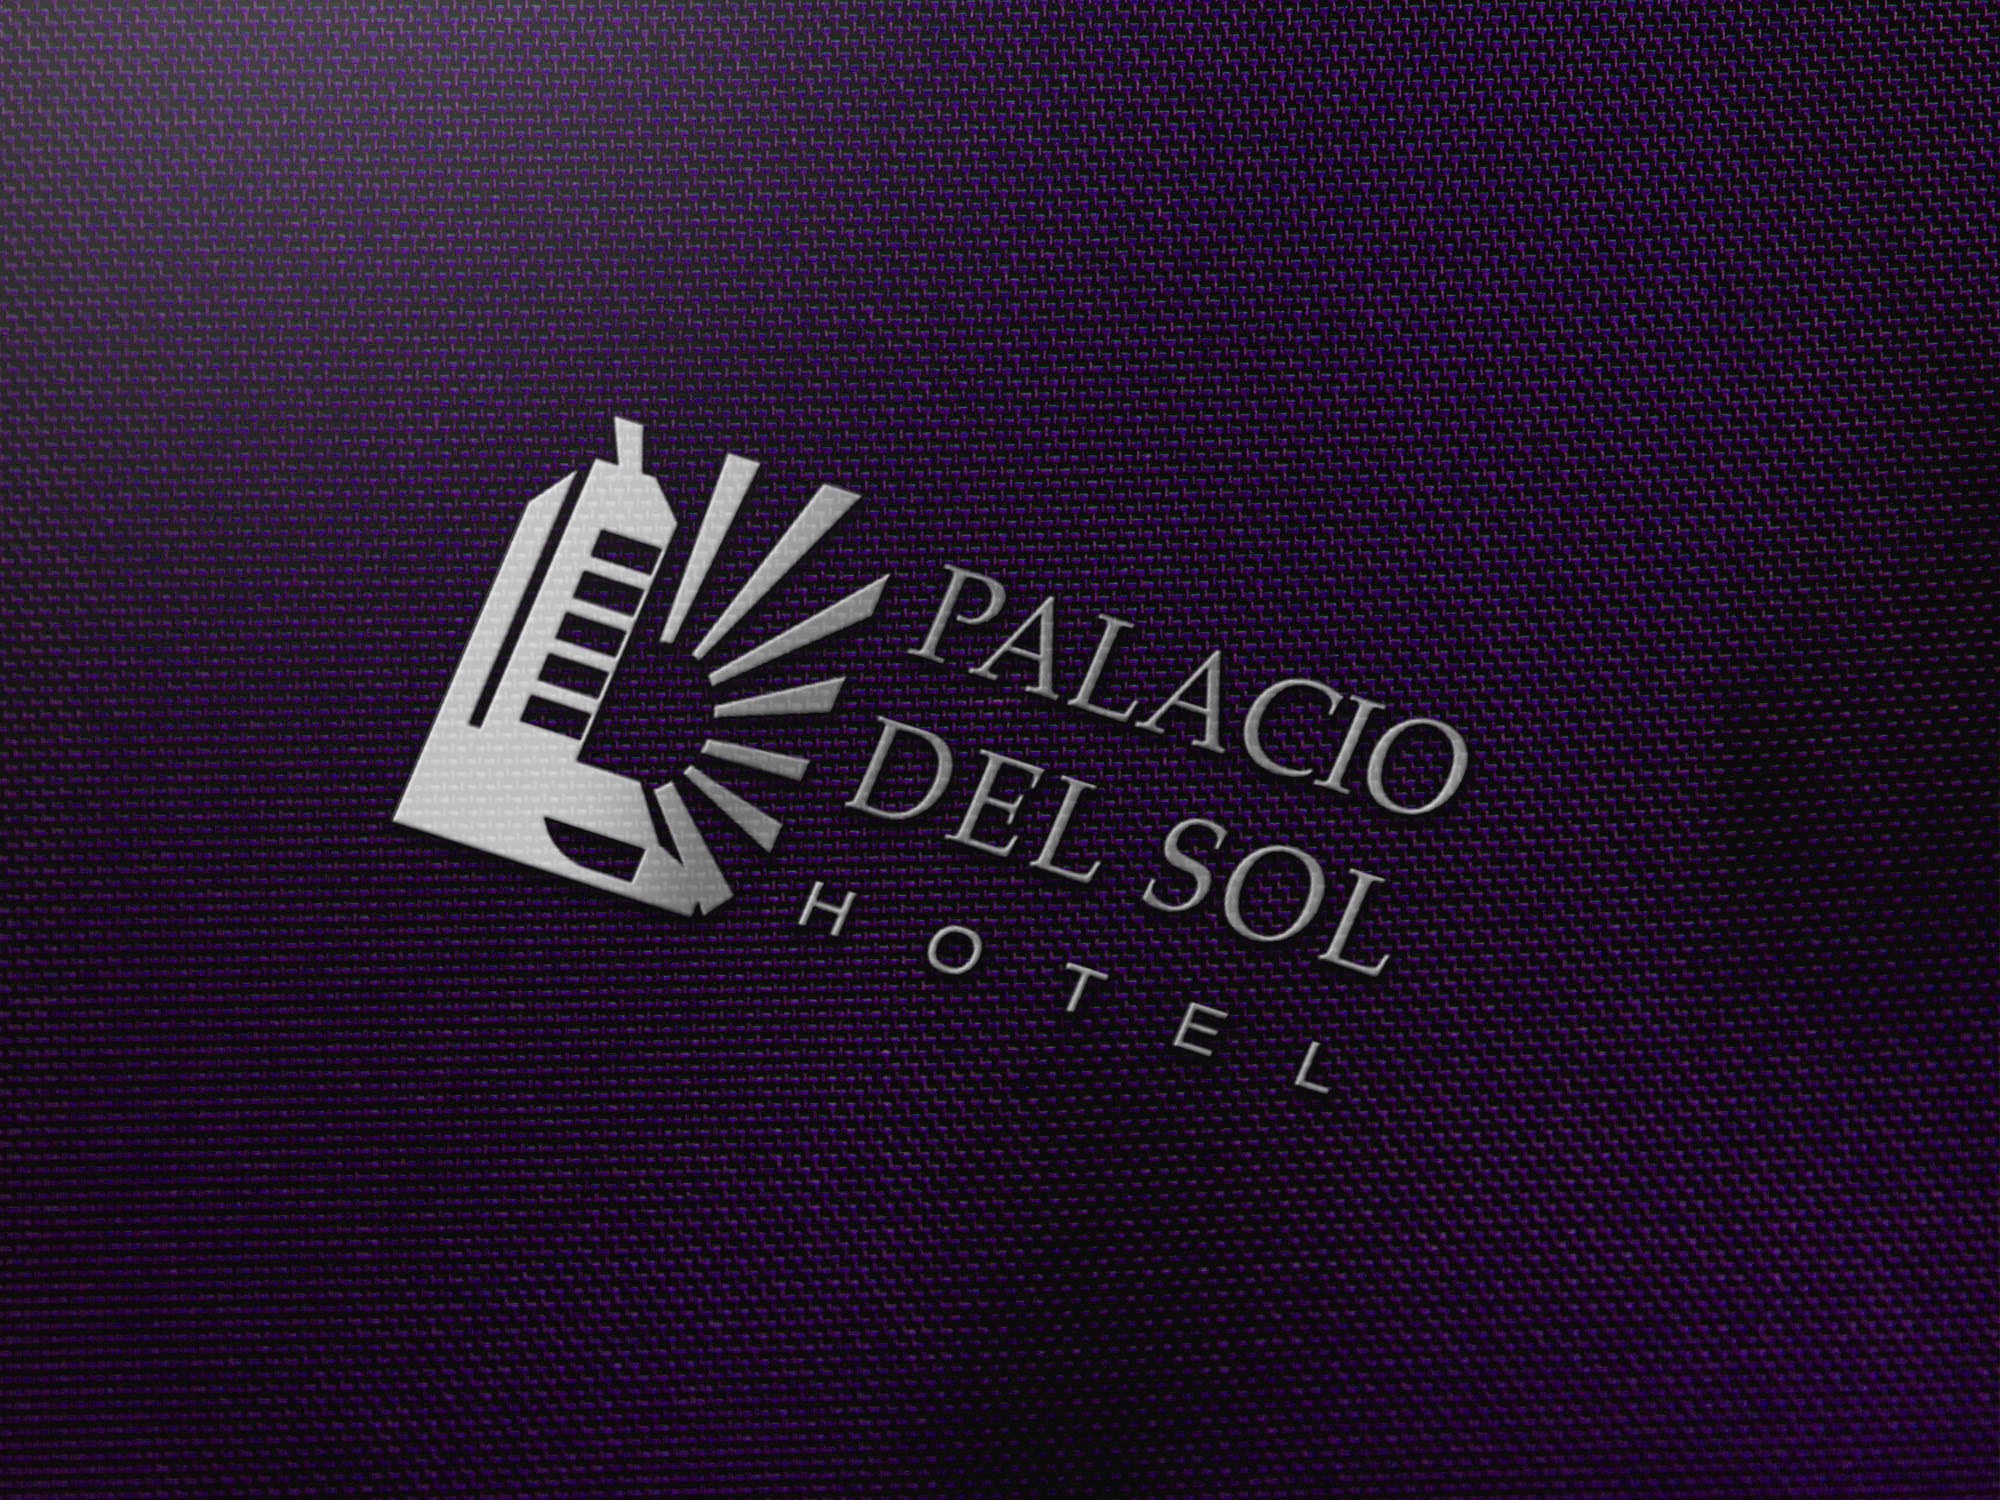 The Palacio del Sol Hotel is located in Chihuahua, Mexico. It is a historic building in the center of the city with more than 40 years of history.  Learn More .